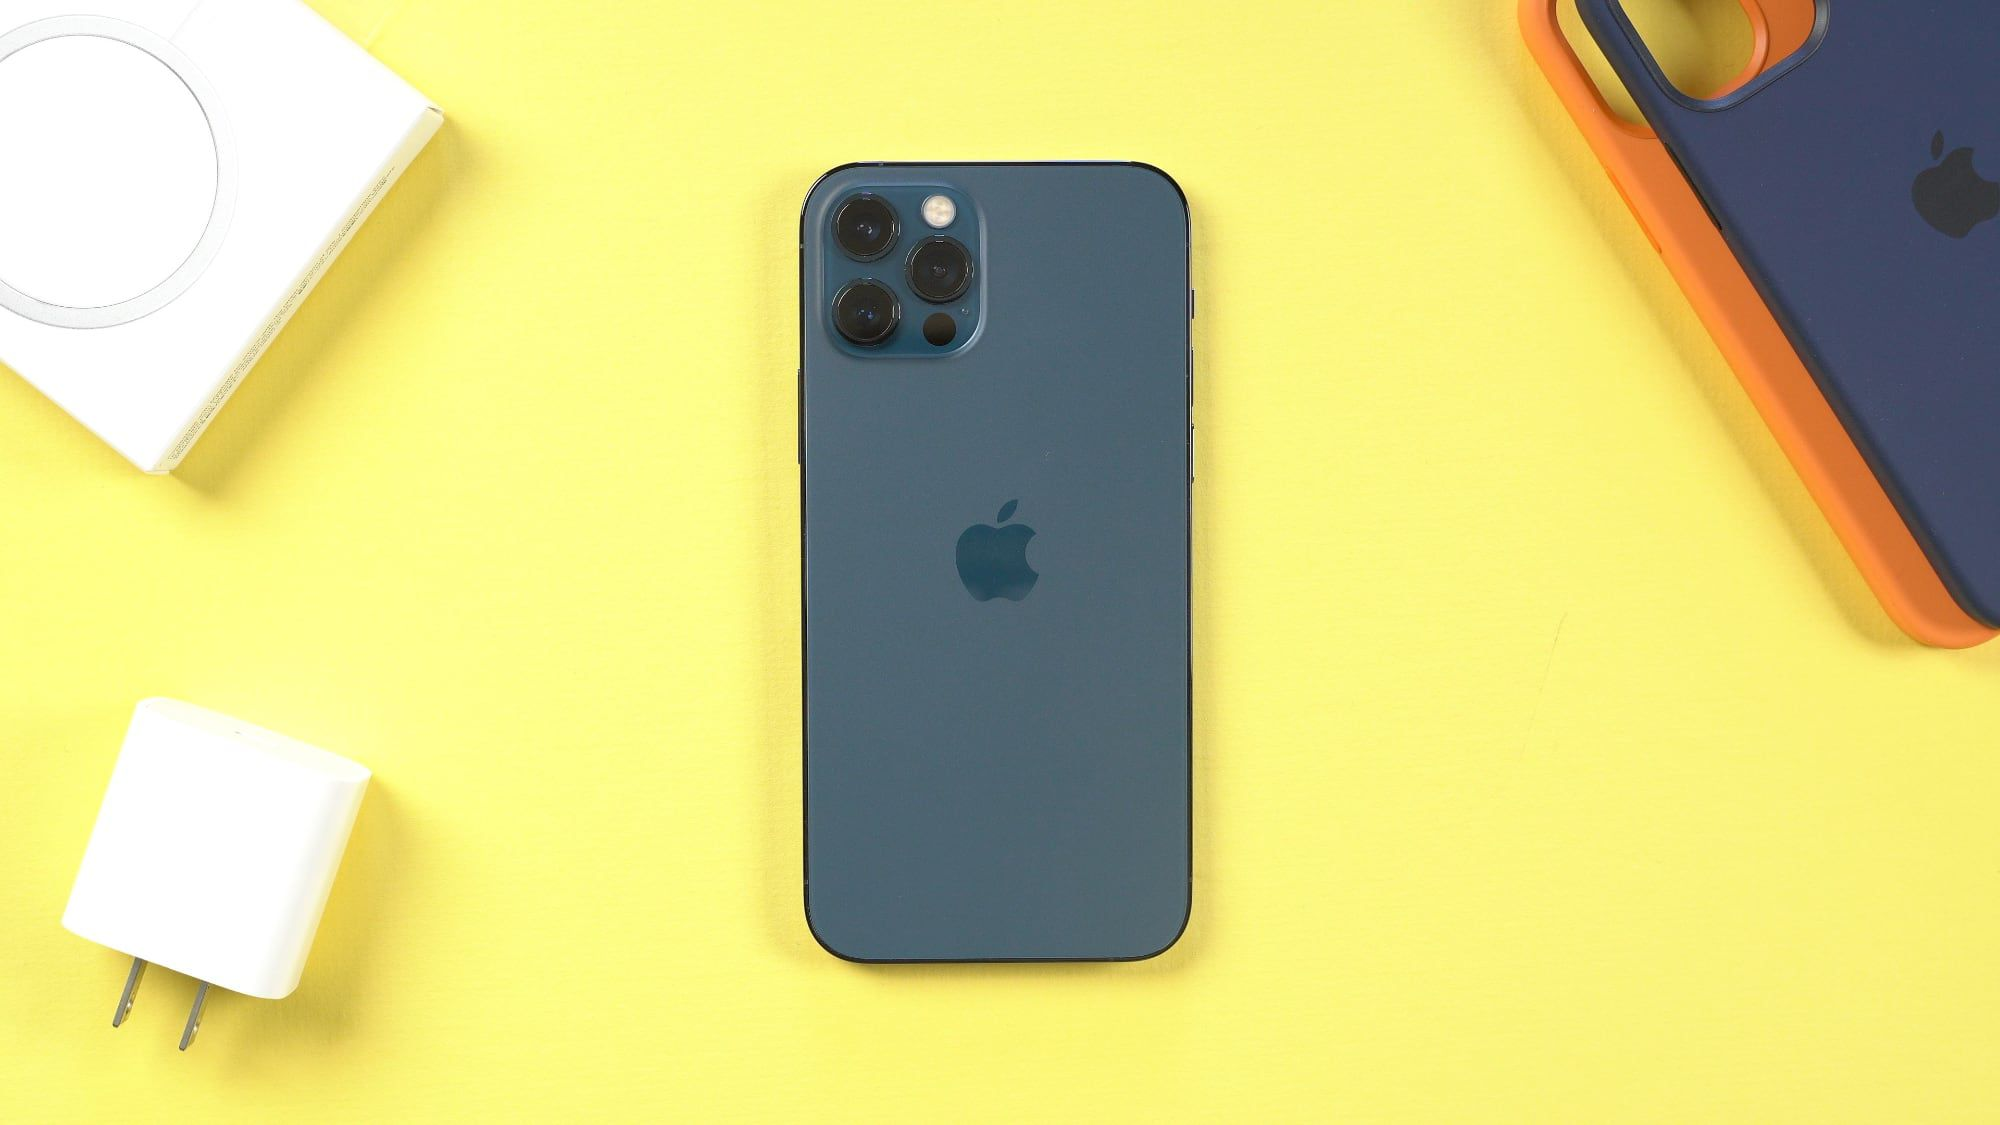 Hands-On With the New iPhone 12 Pro